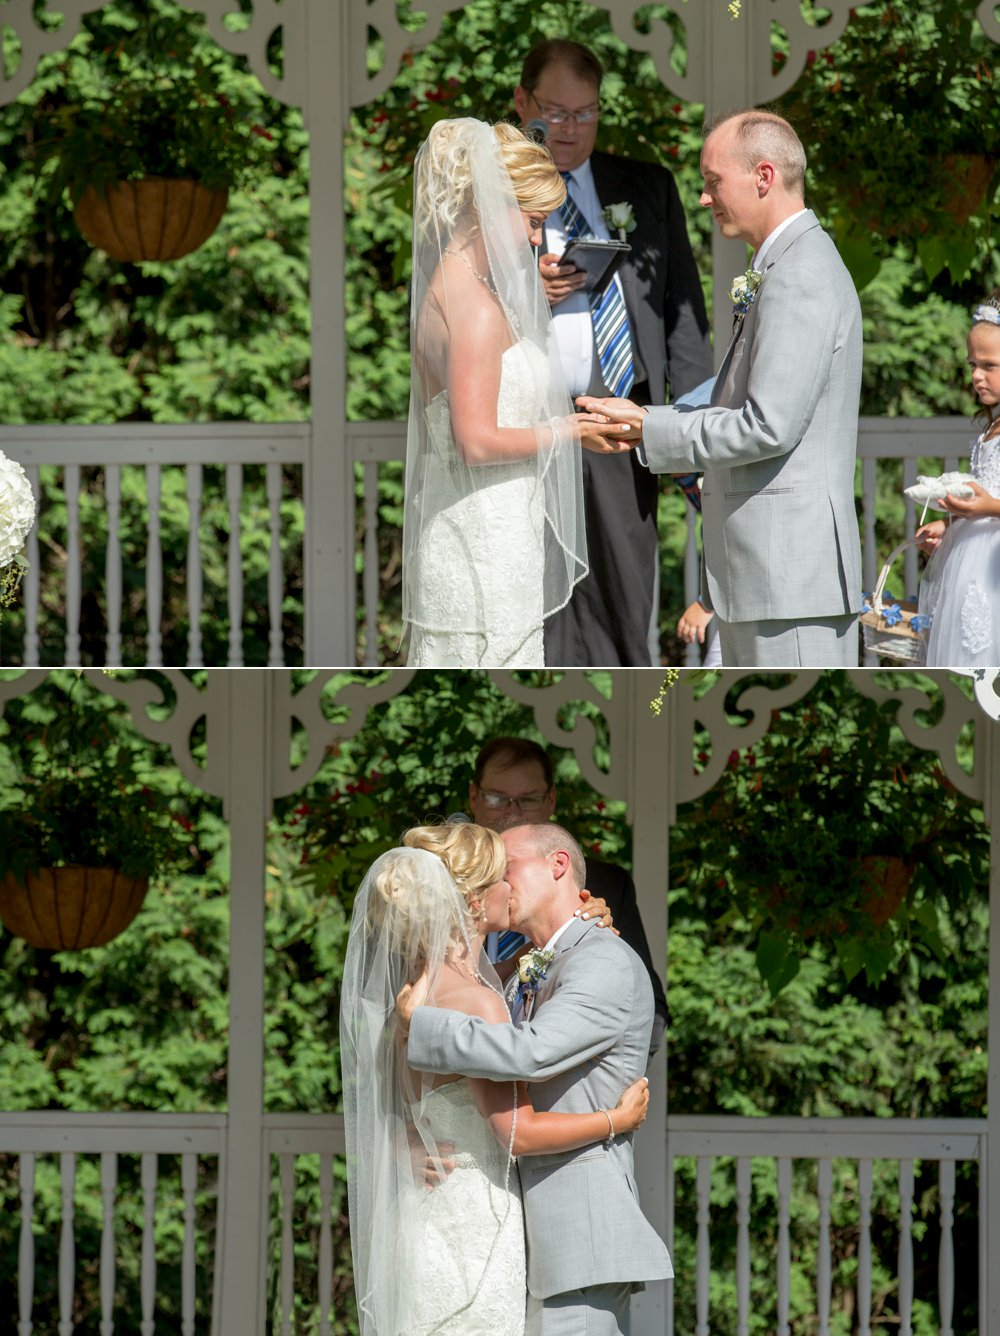 SomerbyJonesPhotography_PublickHouseWedding_SturbridgeWedding_0020.jpg